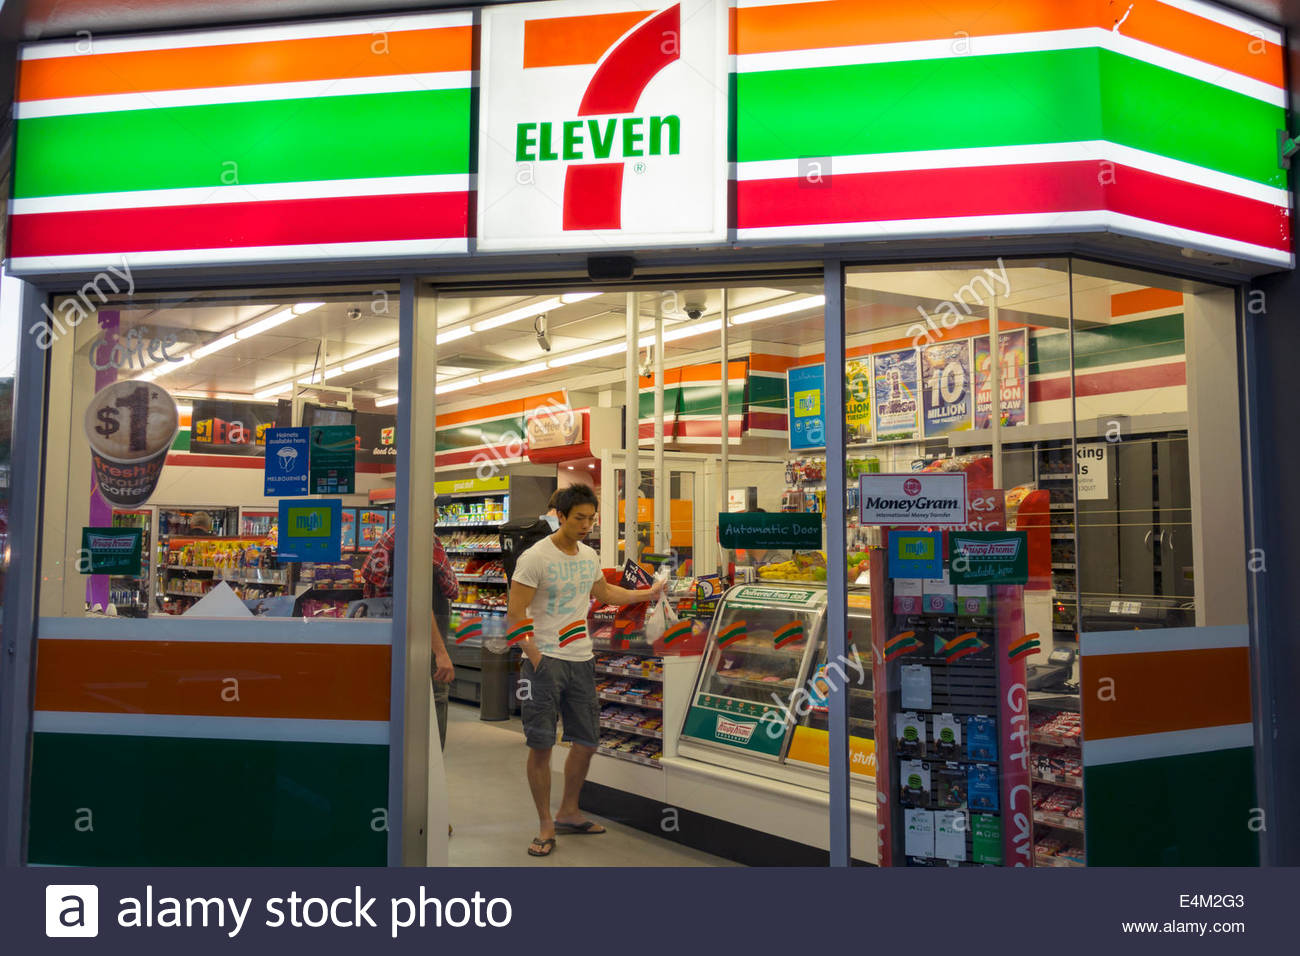 © 7-Eleven All rights reserved. The Dairy Farm Company, Limited 牛奶有限公司.